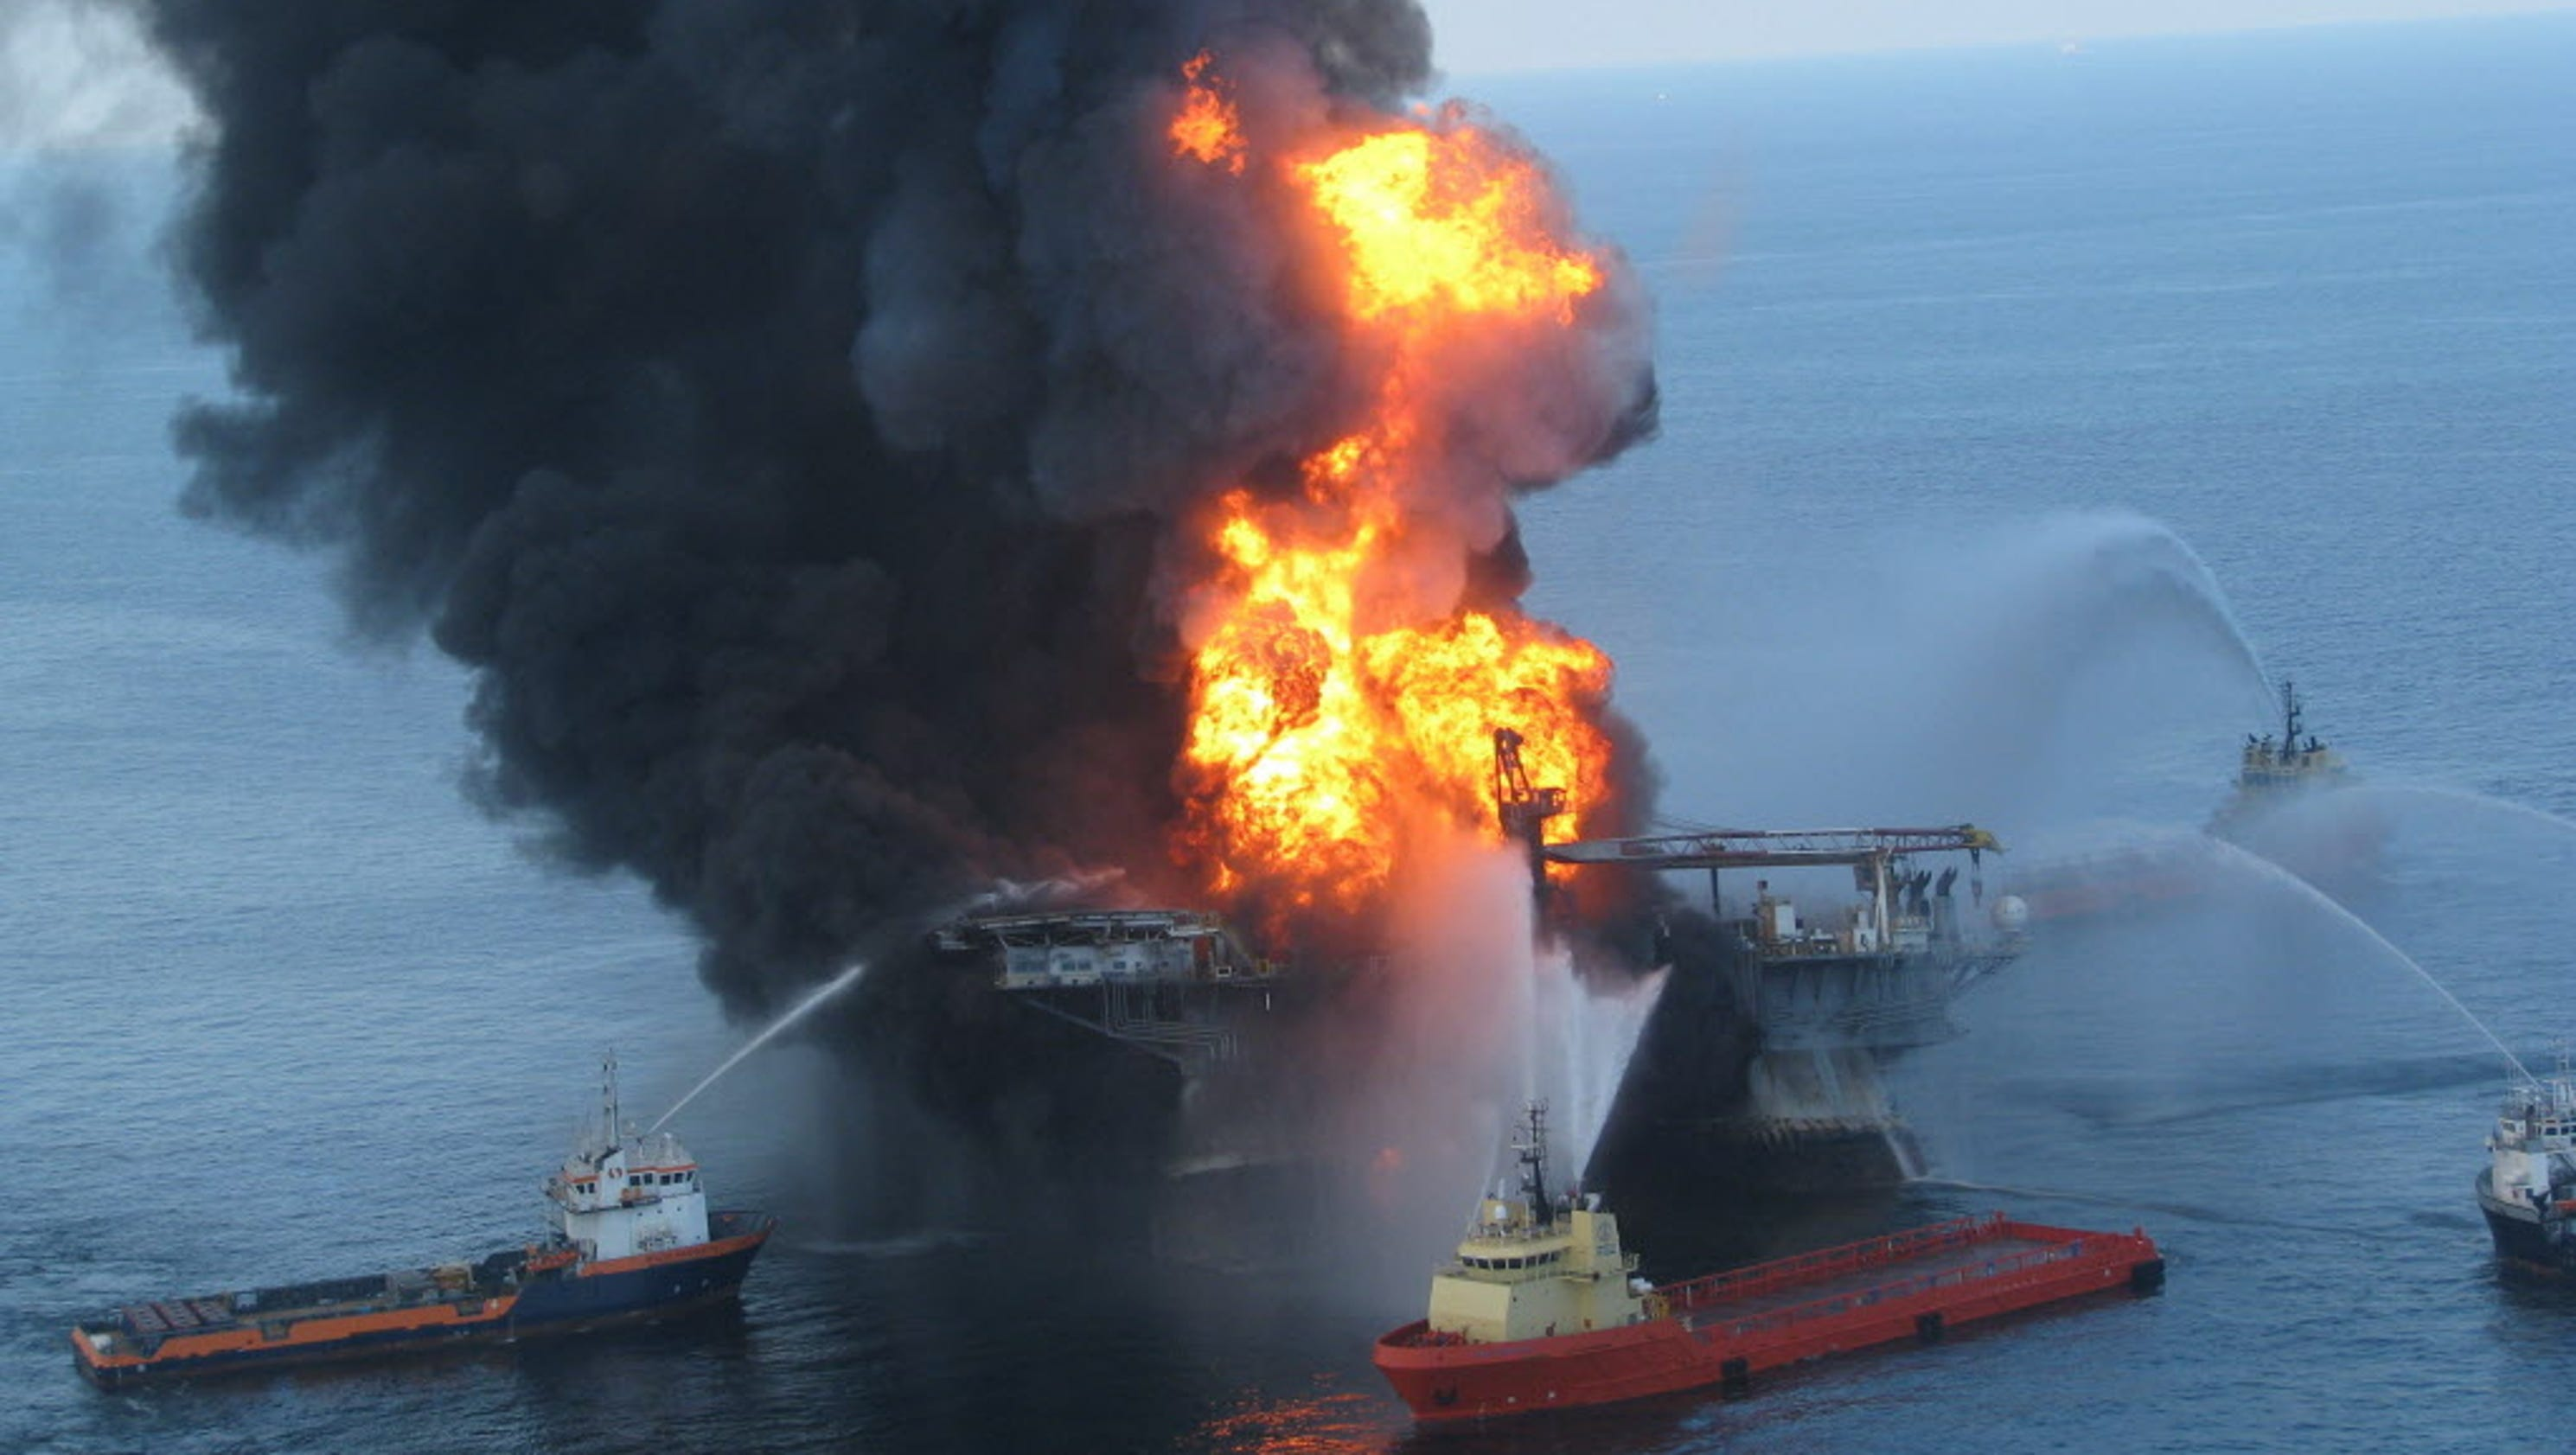 offshore oil drilling essay Essay #1 the devastation of the oil spill on april 20, 2010, a massive offshore drilling rig, known as the deepwater horizon, exploded and set fire.